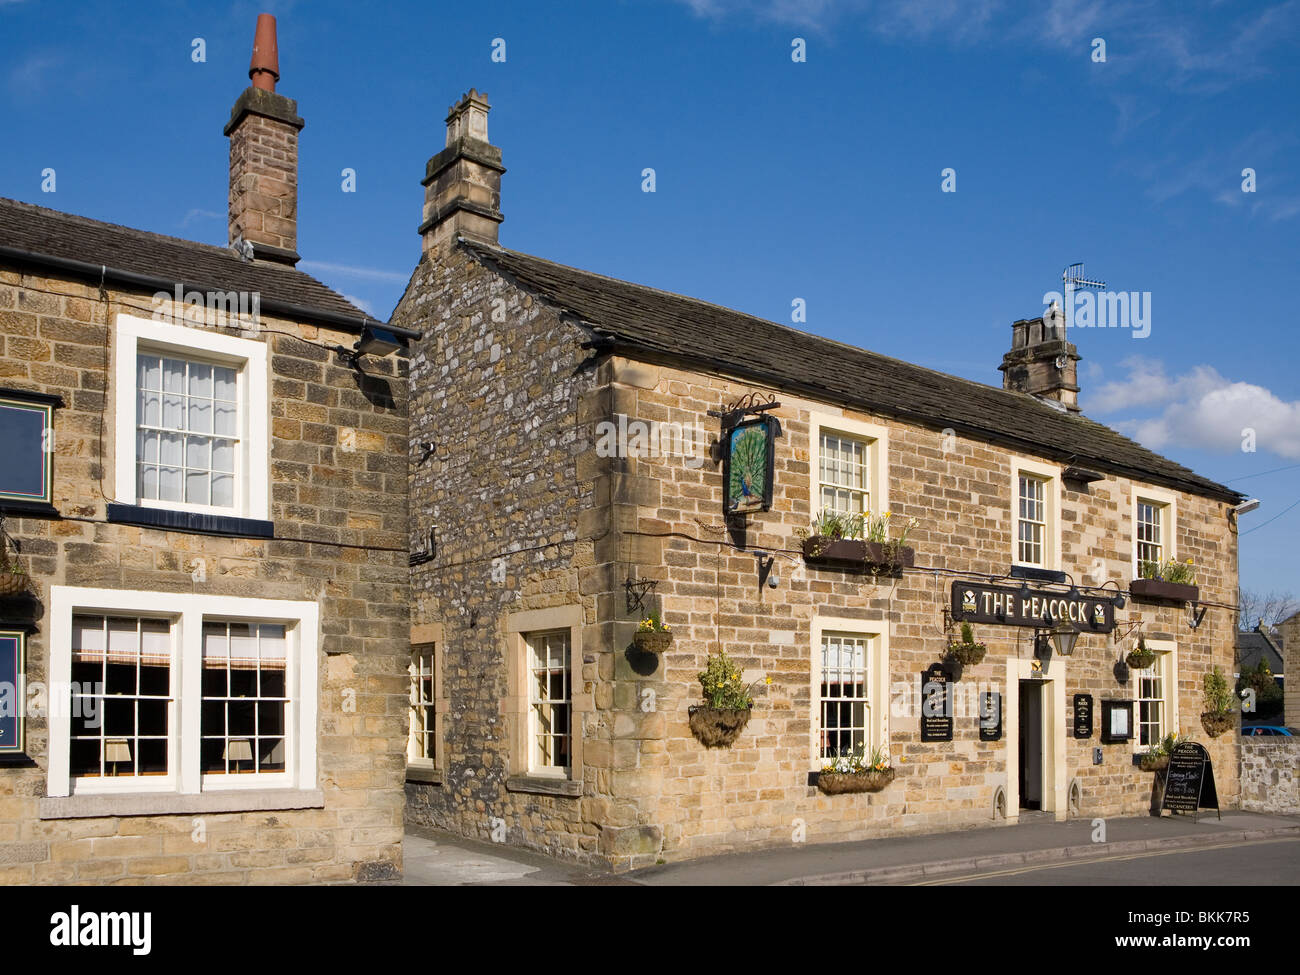 Bakewell, Peak District, Derbyshire, England - Stock Image